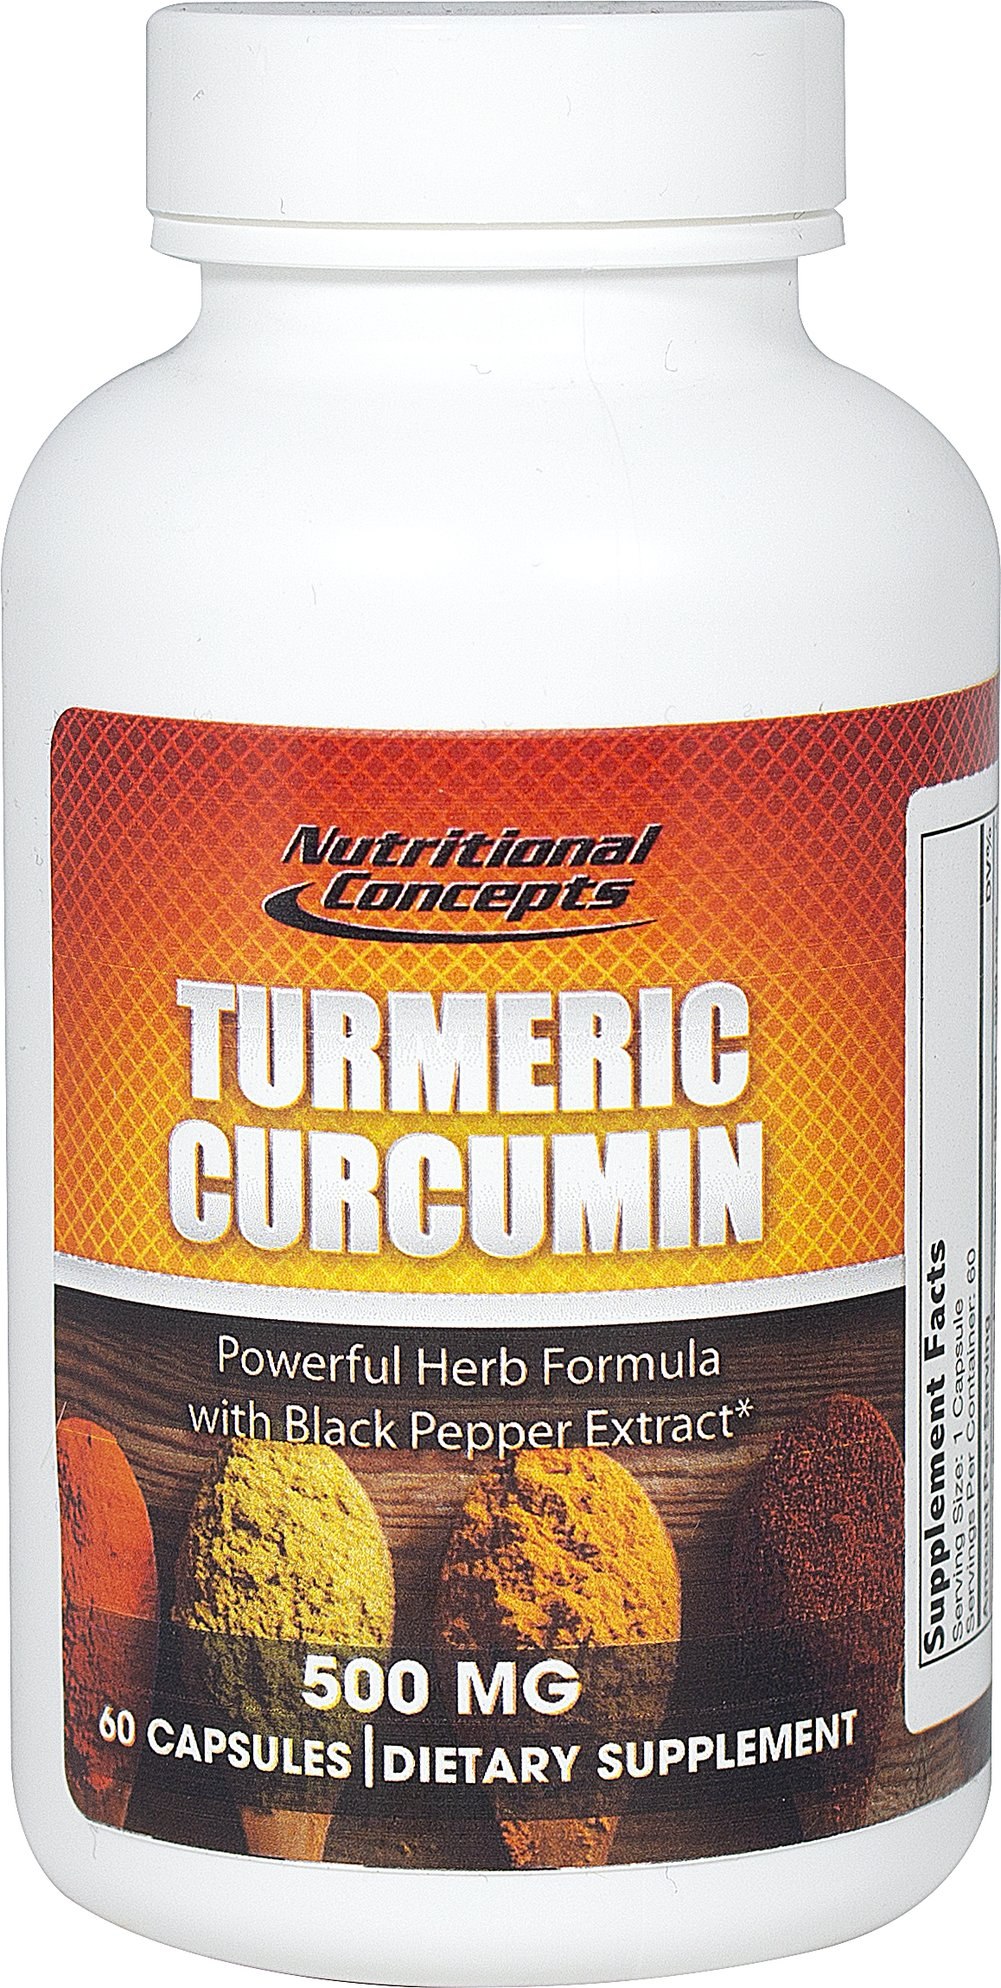 Turmeric Curcumin 500mg Thumbnail Alternate Bottle View